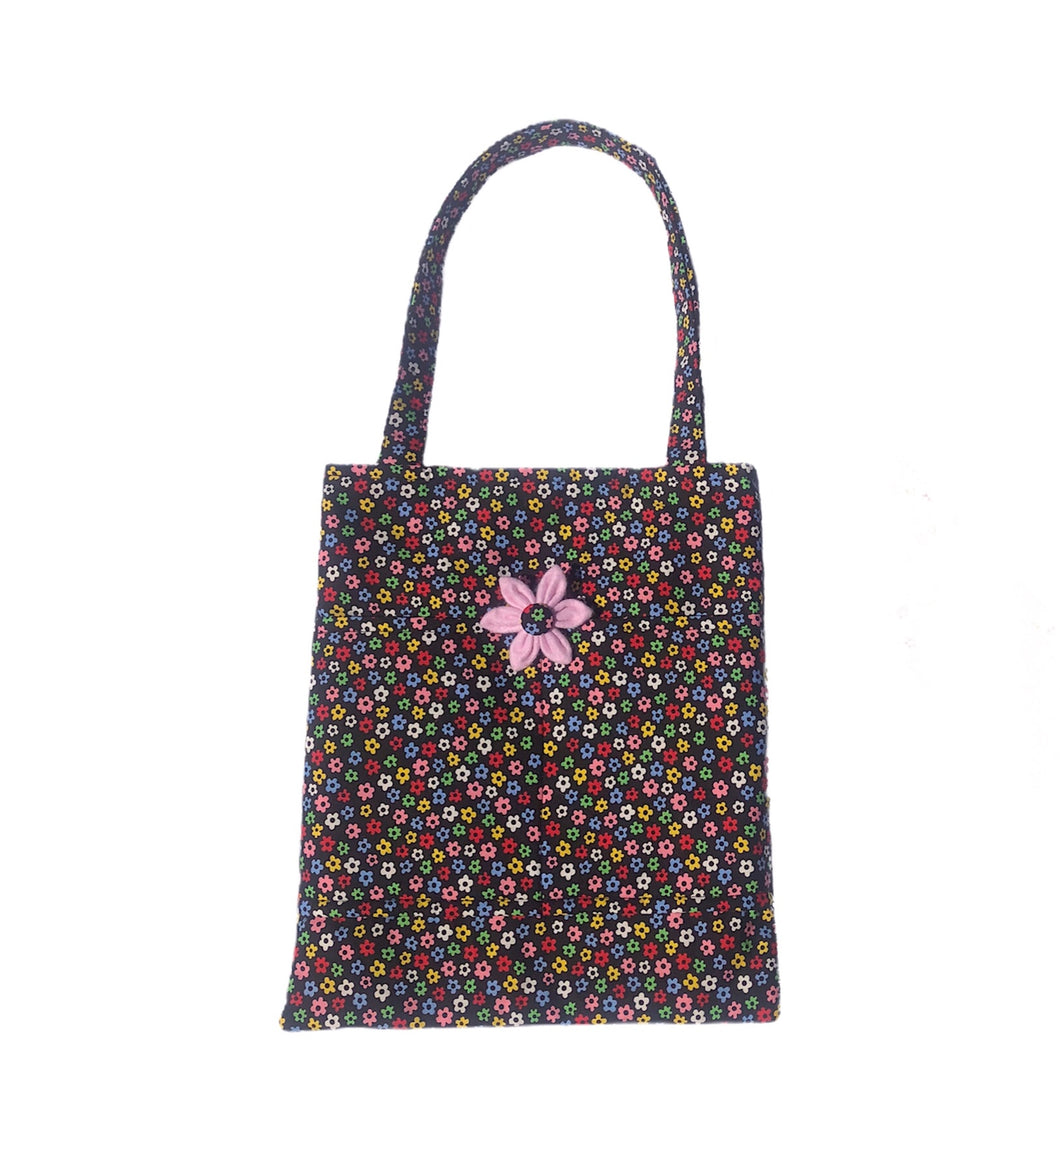 Padded cotton fabric tote bag with internal and external pockets. Ditsy floral print on a black background. Handmade and washable. Made in the U.K.